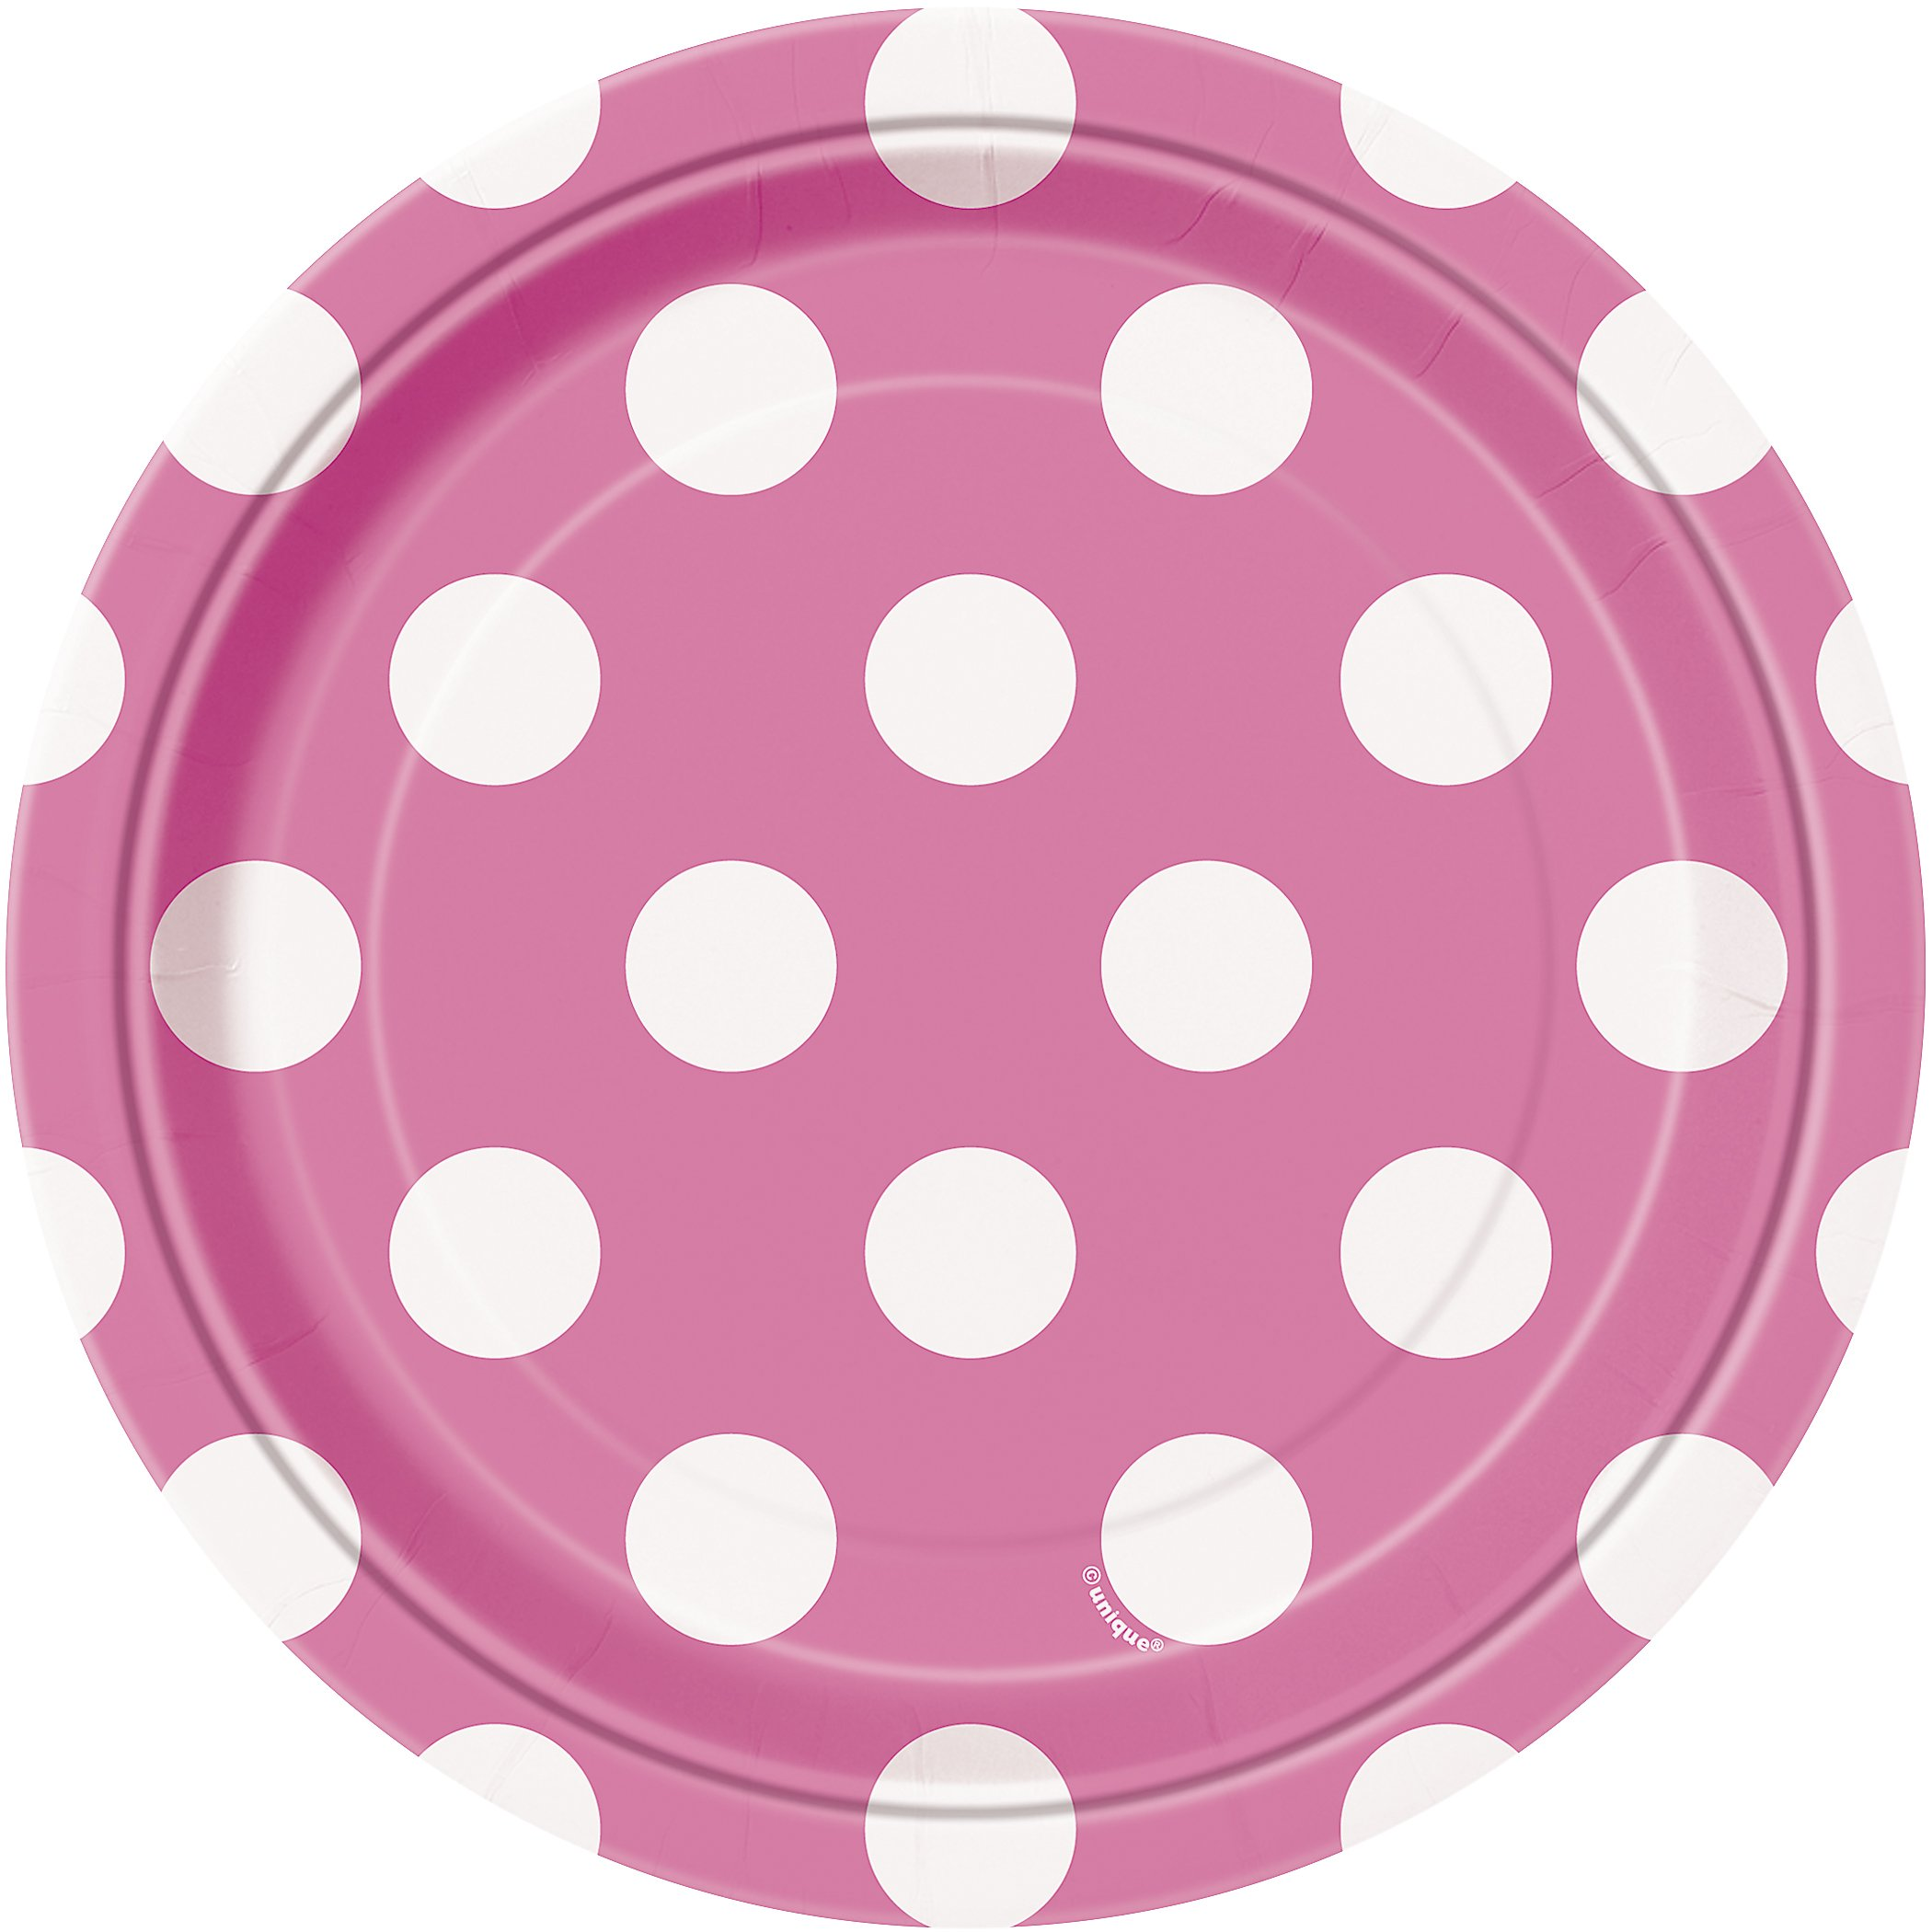 Hot Pink Polka Dot Paper Cake Plates, 8ct by Unique Industries (Image #1)